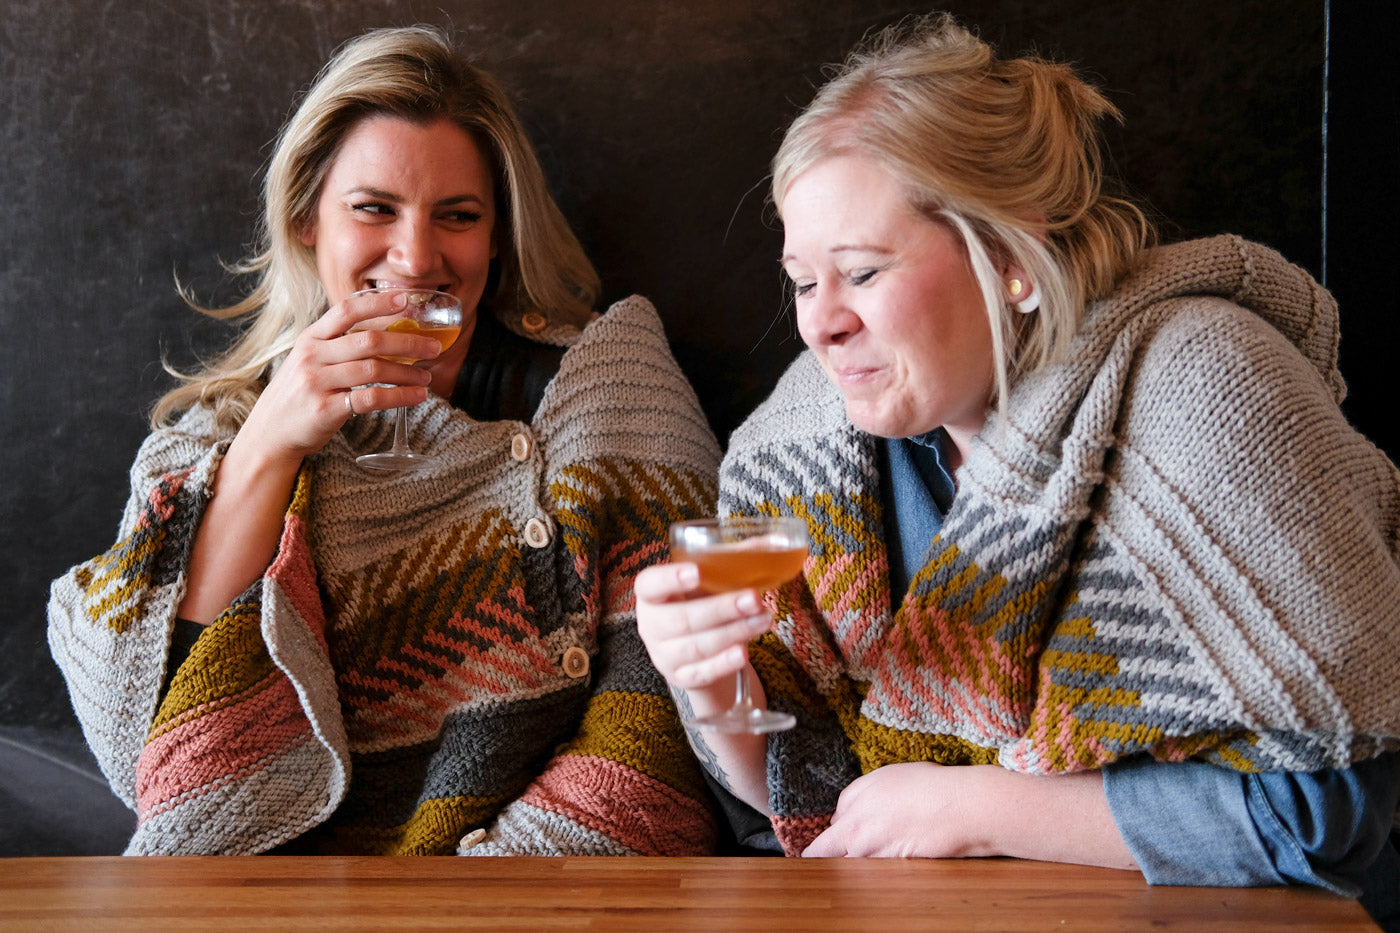 Kelly and Heather sipping cocktails in their Om shawls